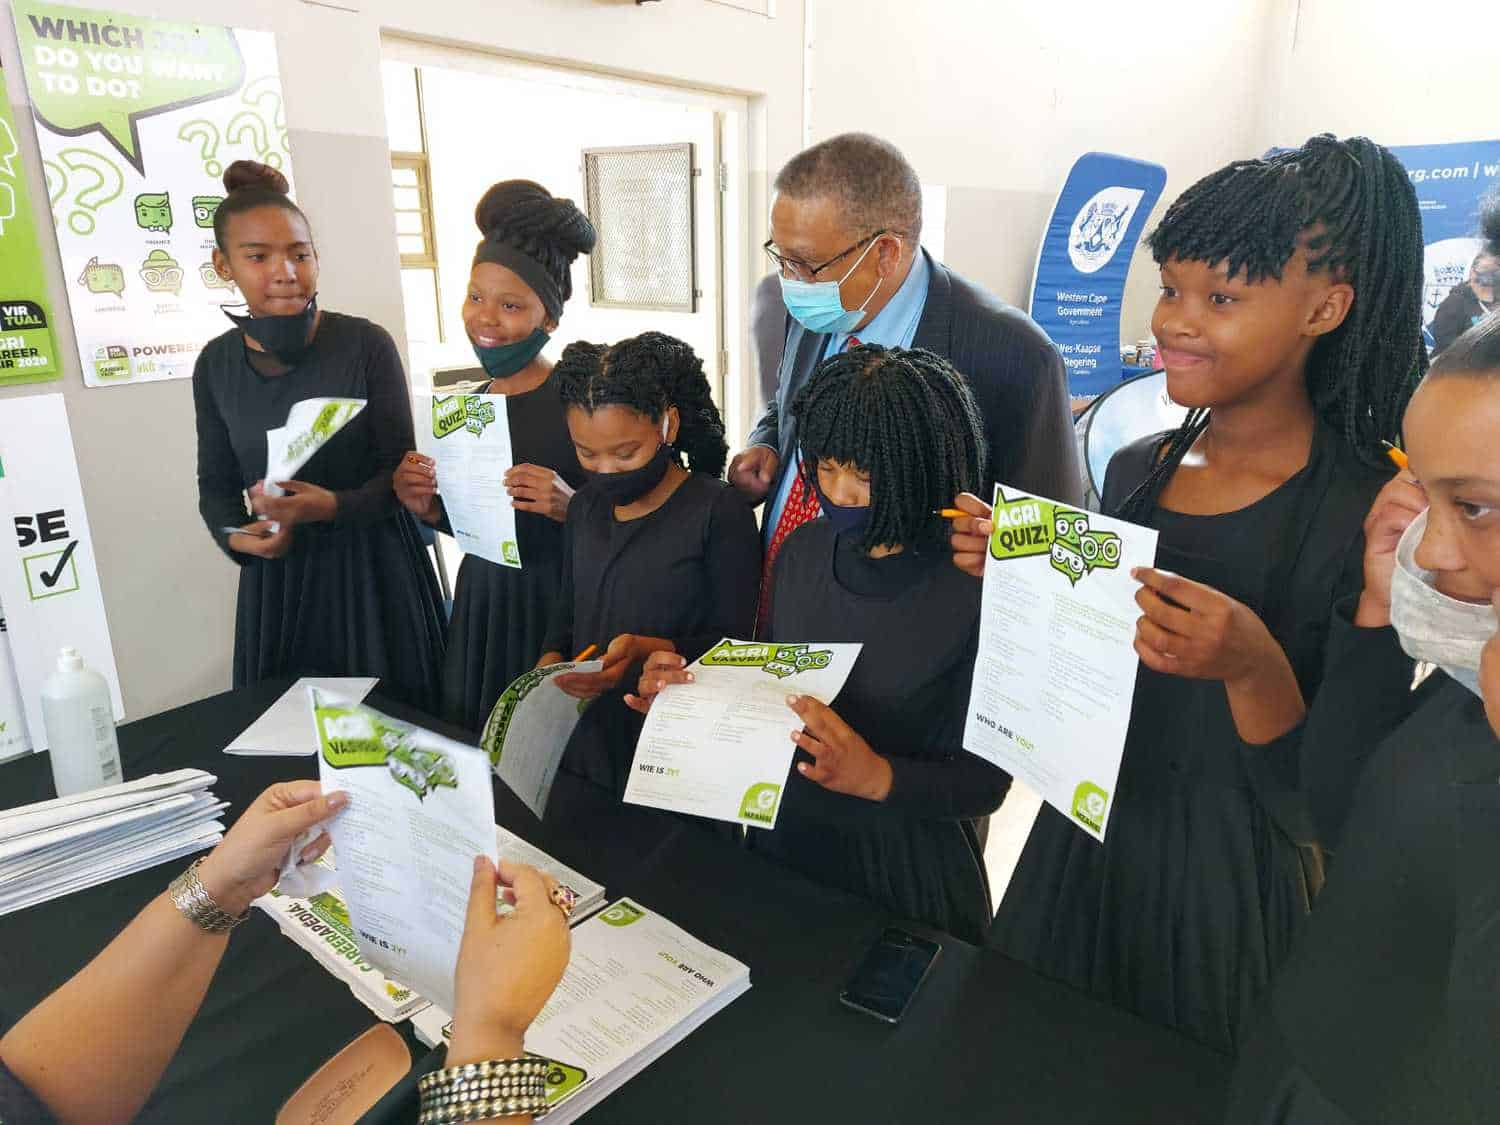 Western Cape agriculture minister Dr Ivan Meyer interacting with learners at Food For Mzansi's stand at the provincial government's career expo. Photo: Supplied/Food For Mzansi